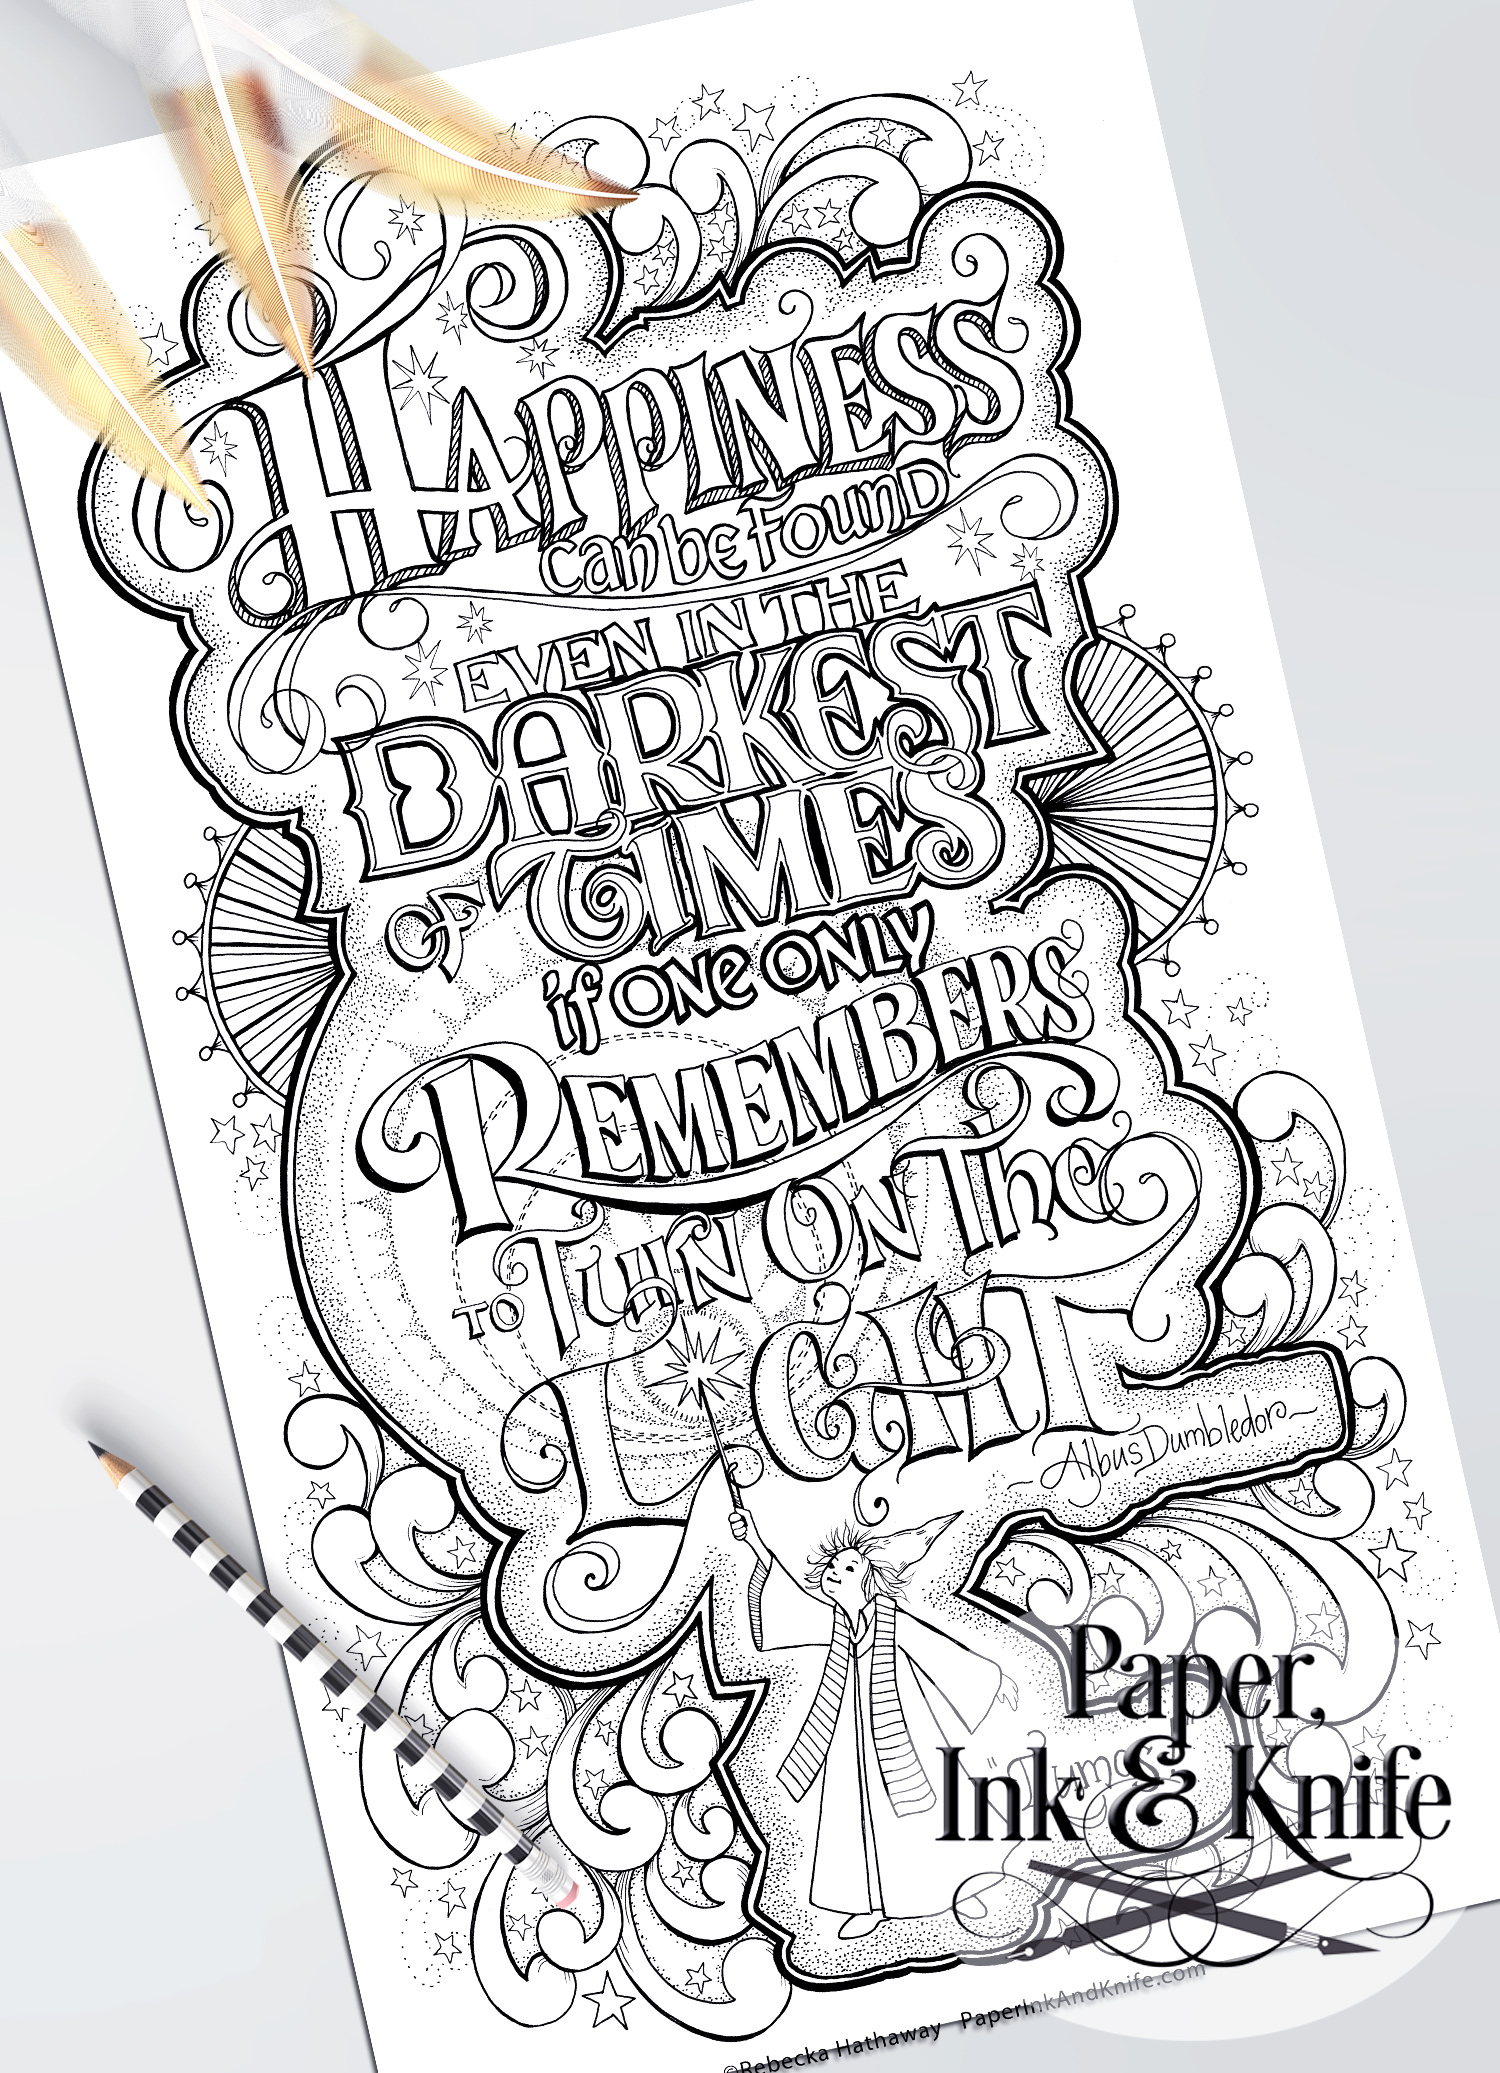 Happiness can still be found - Coloring Page - Paper, Ink and Knife